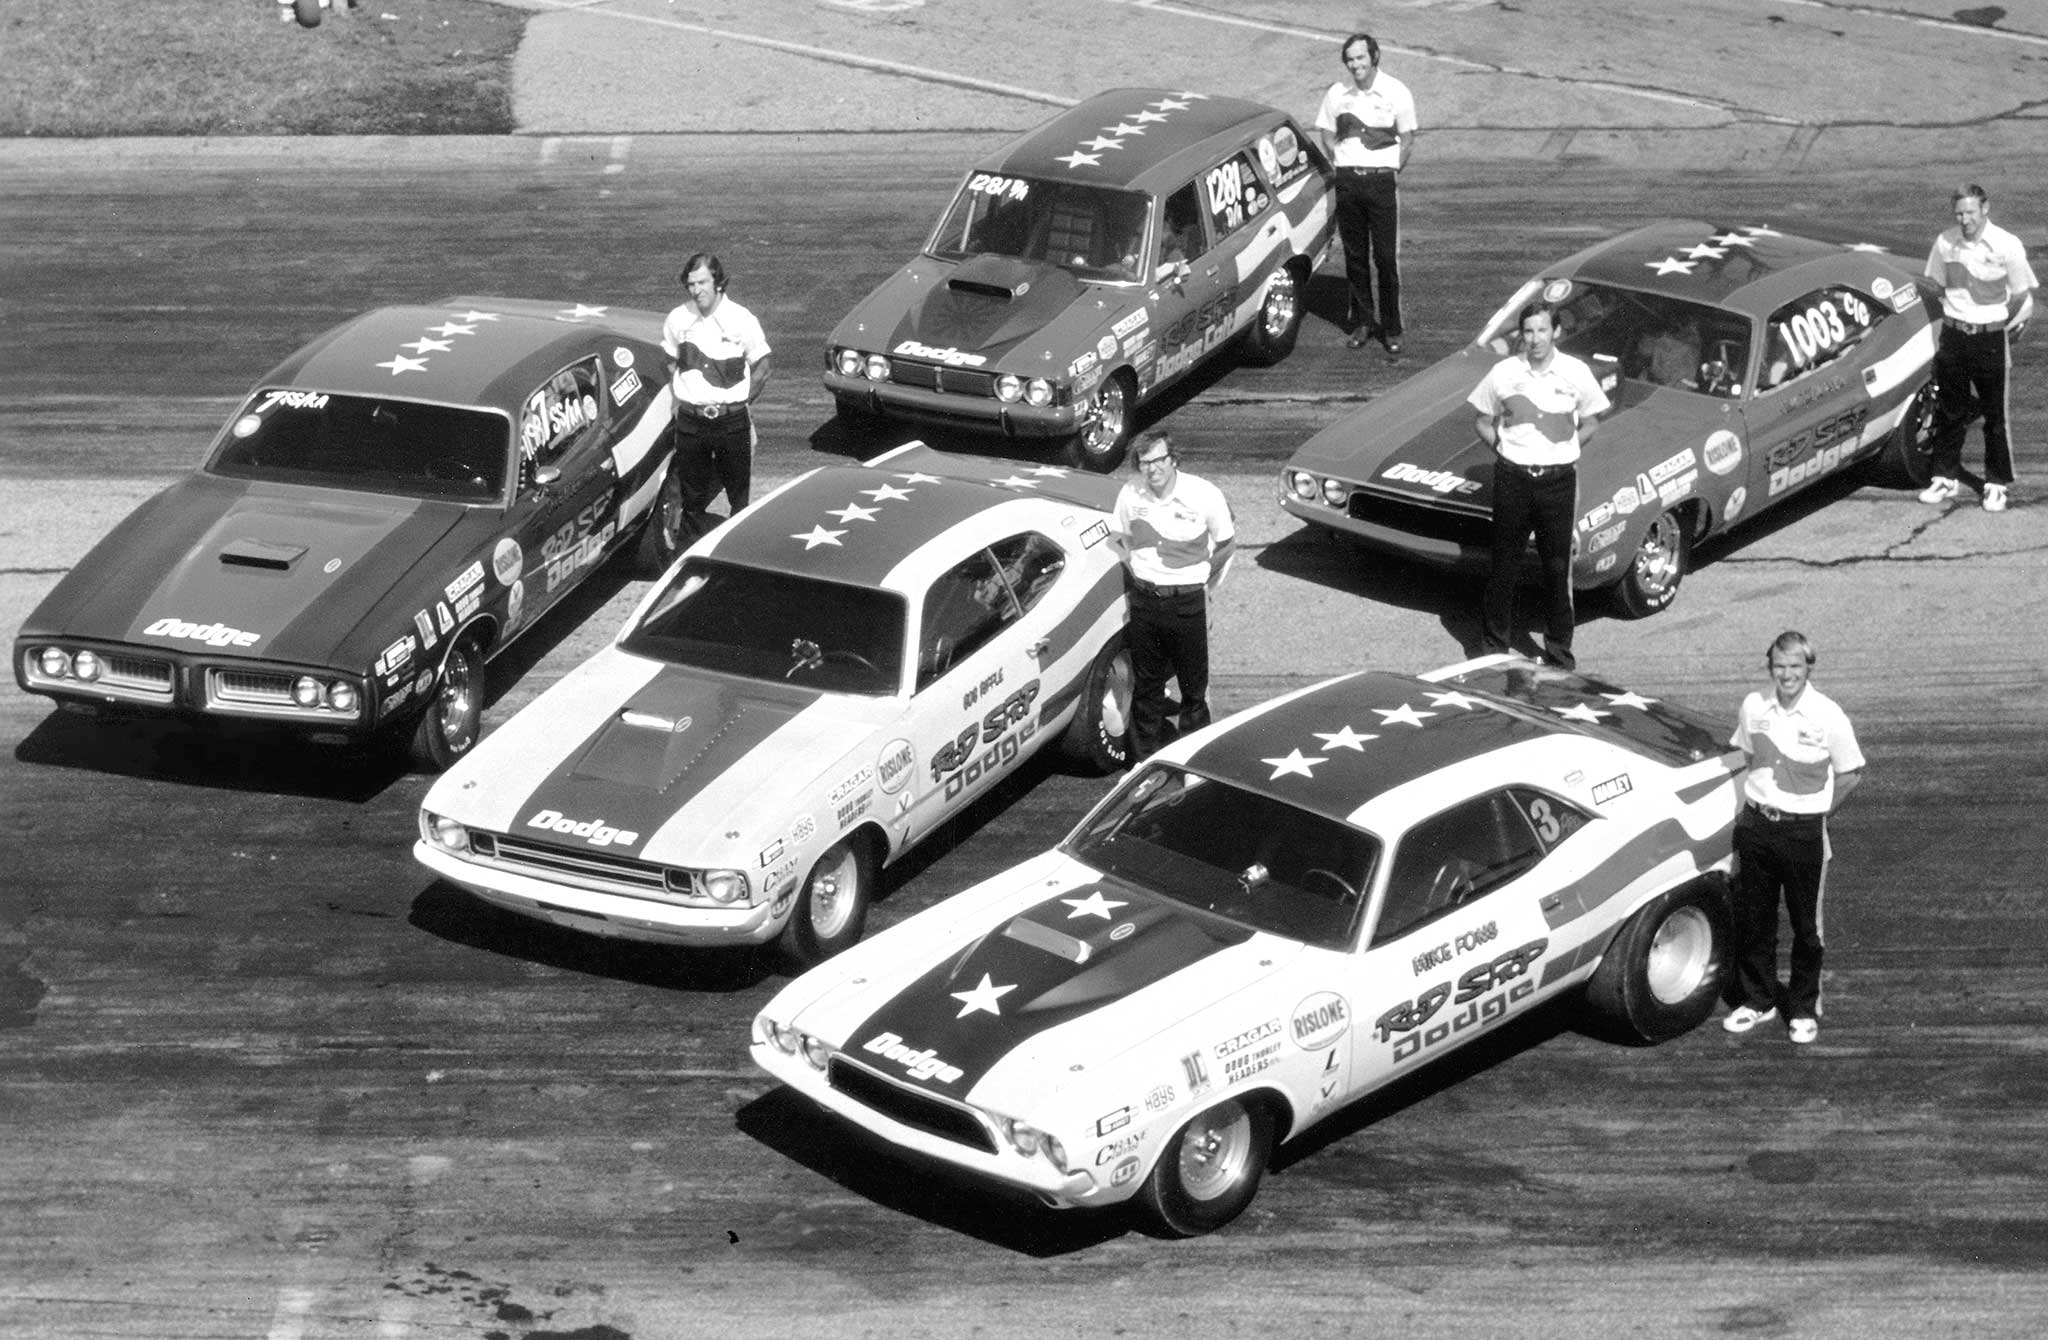 Columbus, Ohio, businessman and drag-racing fan Gilman Kirk used his marketing savvy to assemble a formidable and successful Sportsman team in the 1970s. The Rod Shop offered speed parts and engine and chassis work. Team racers scored class wins, set records, and won major event titles with distinctive paint and crew uniforms.